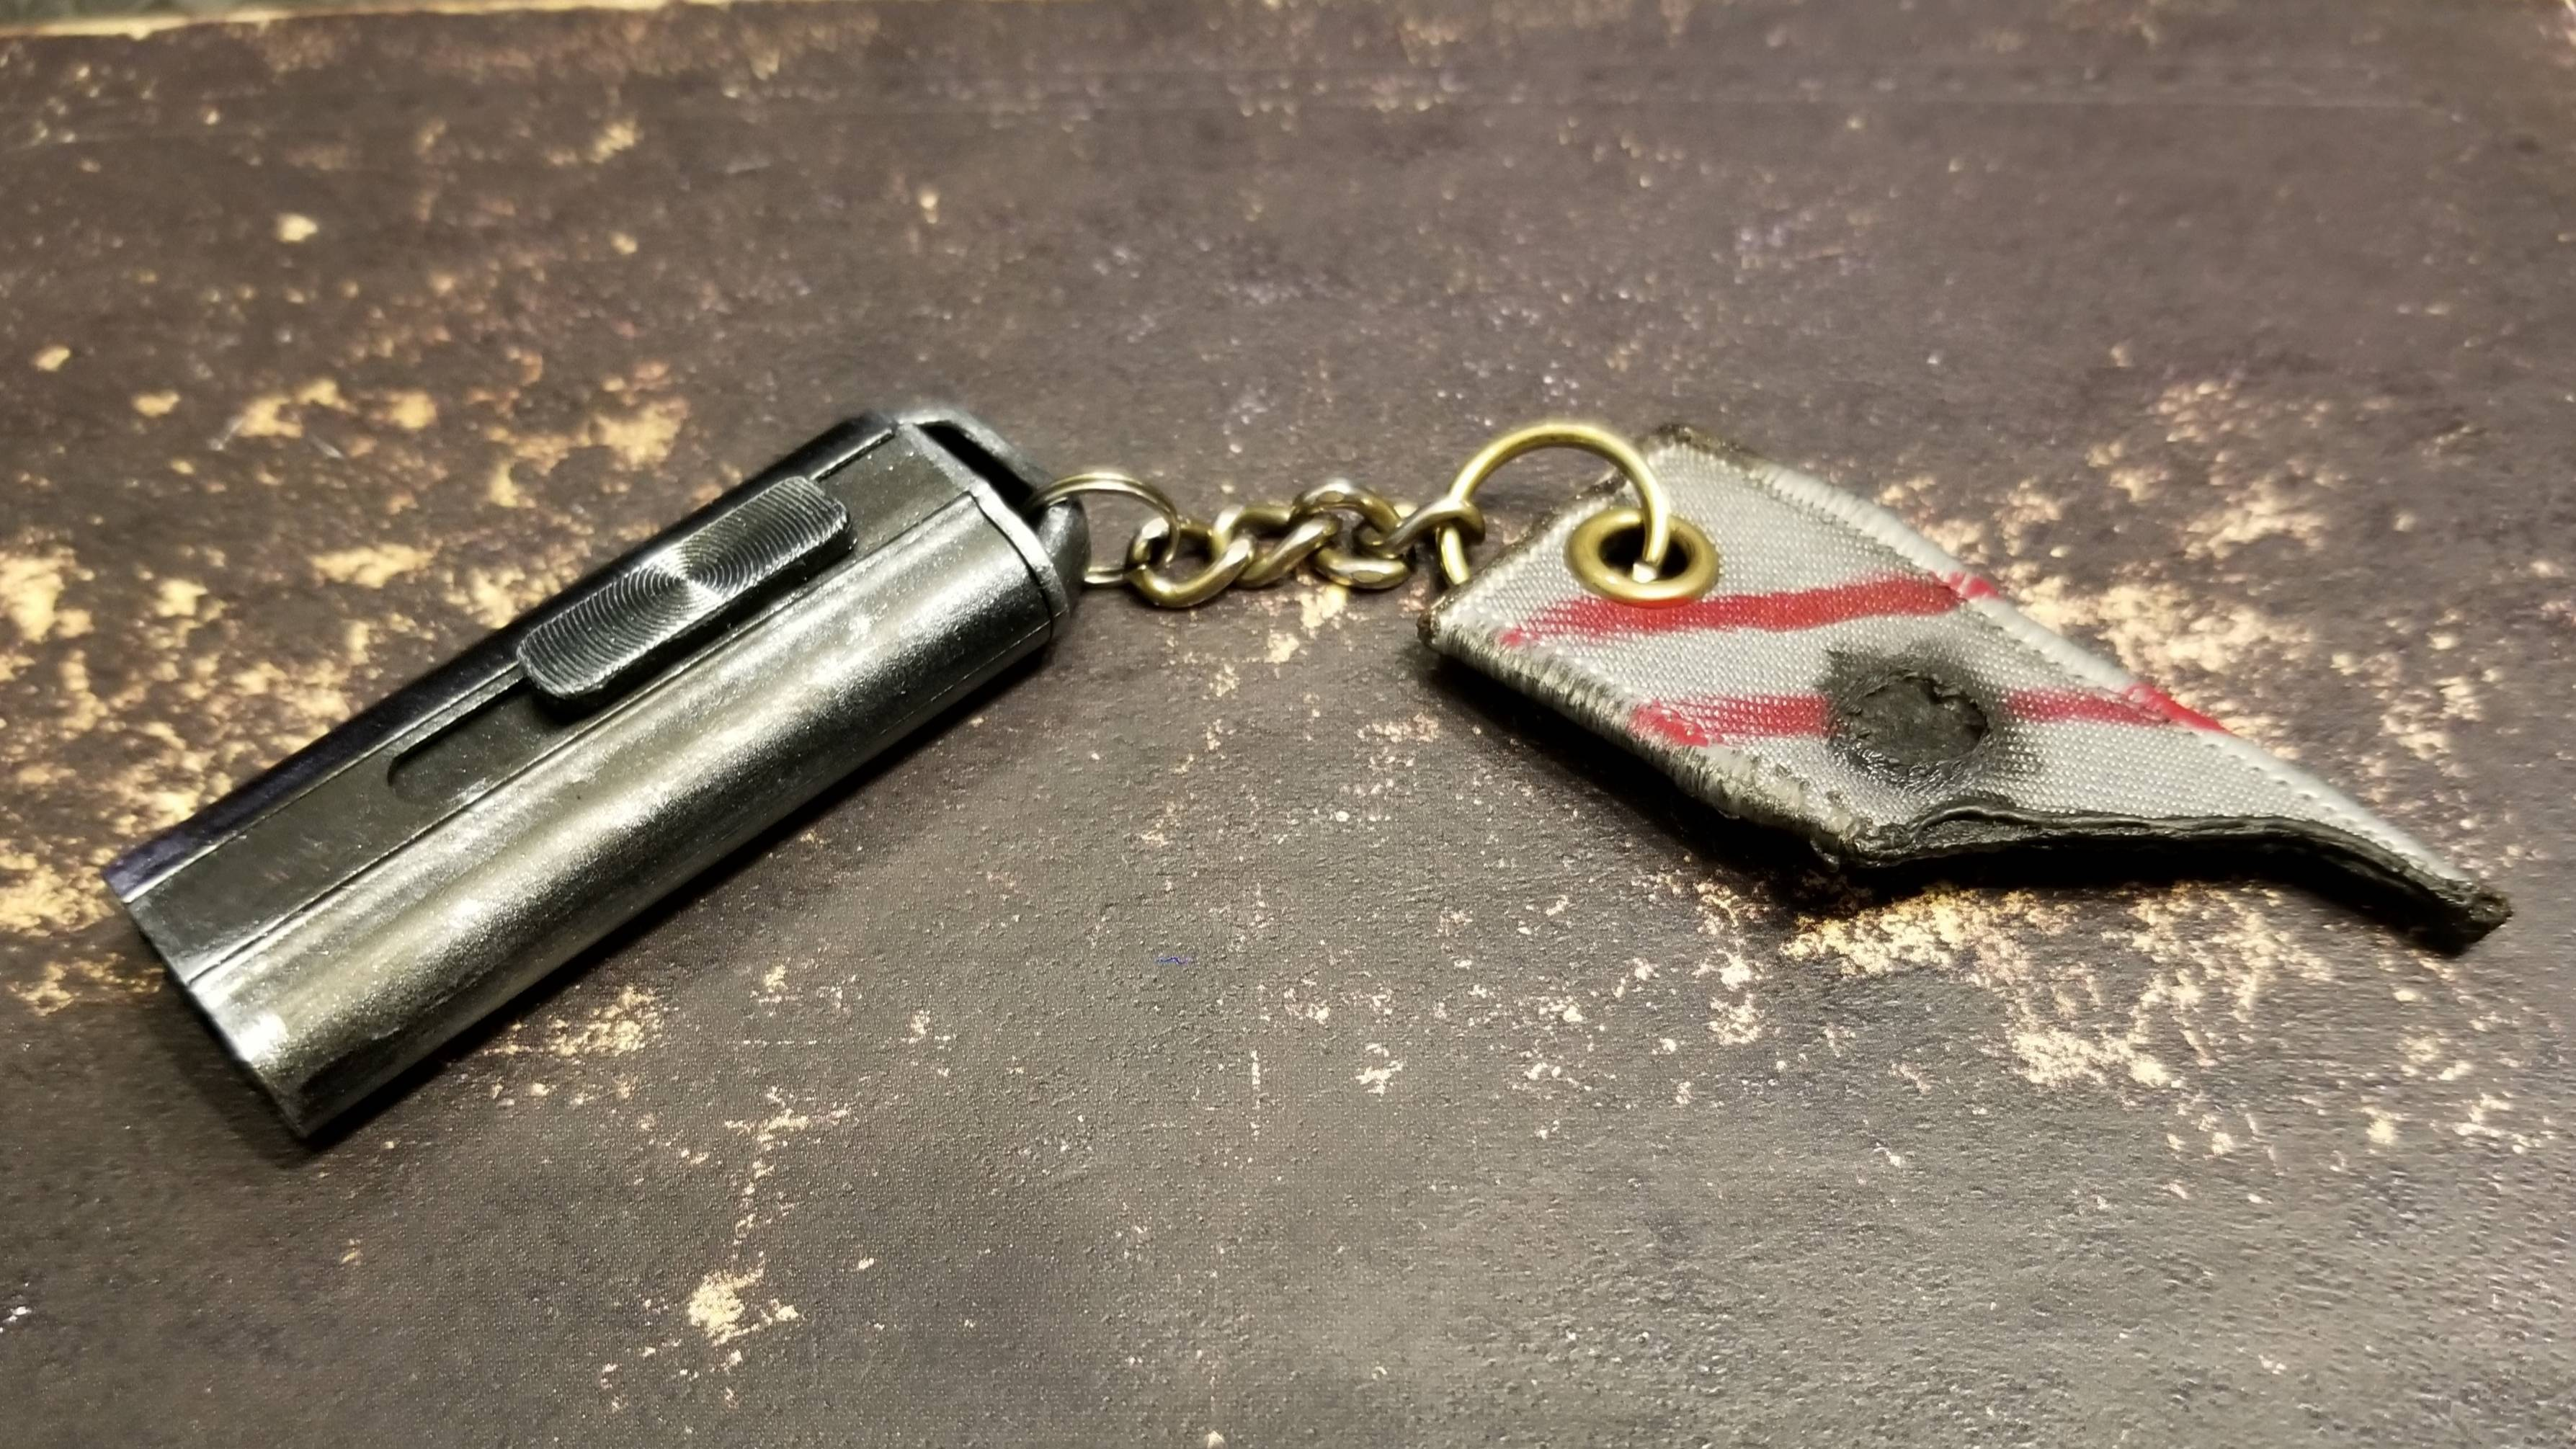 I painted, weathered and detailed a USB stick with a very \'Mandalorian\' feel.